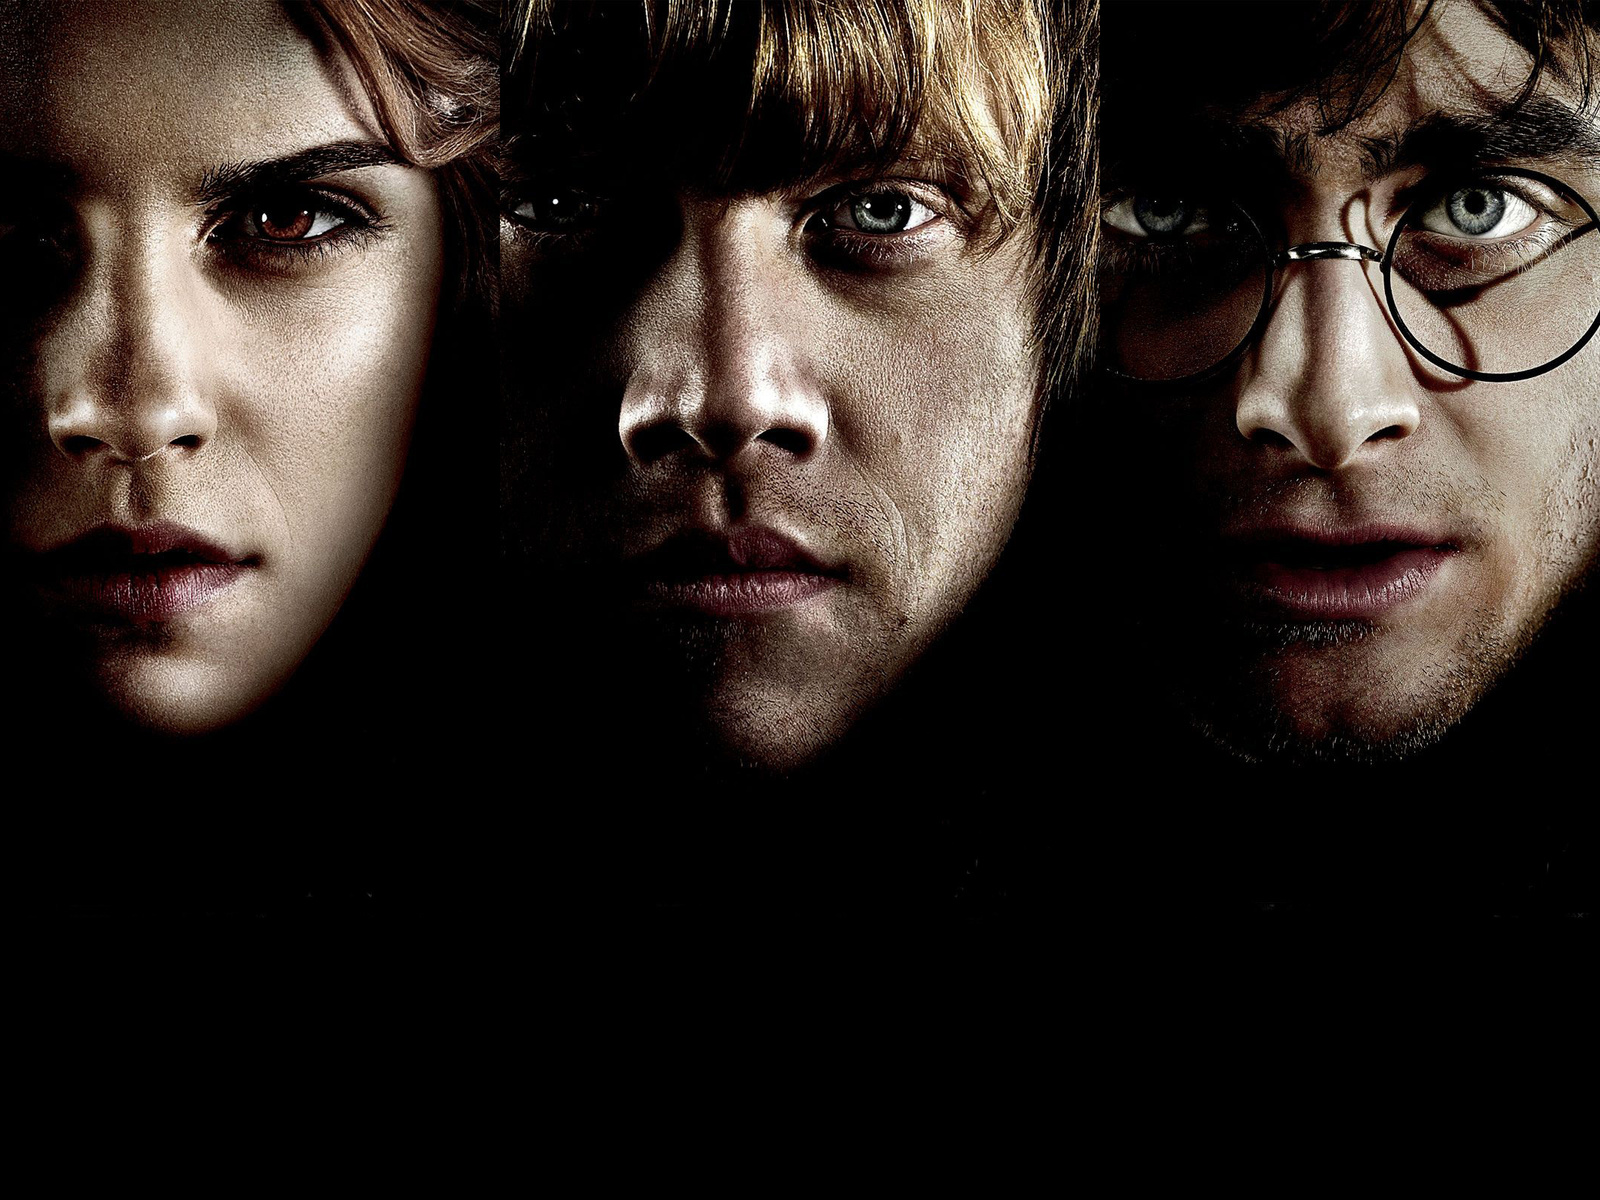 Harry Potter, Ronald Weasley, Hermione Granger